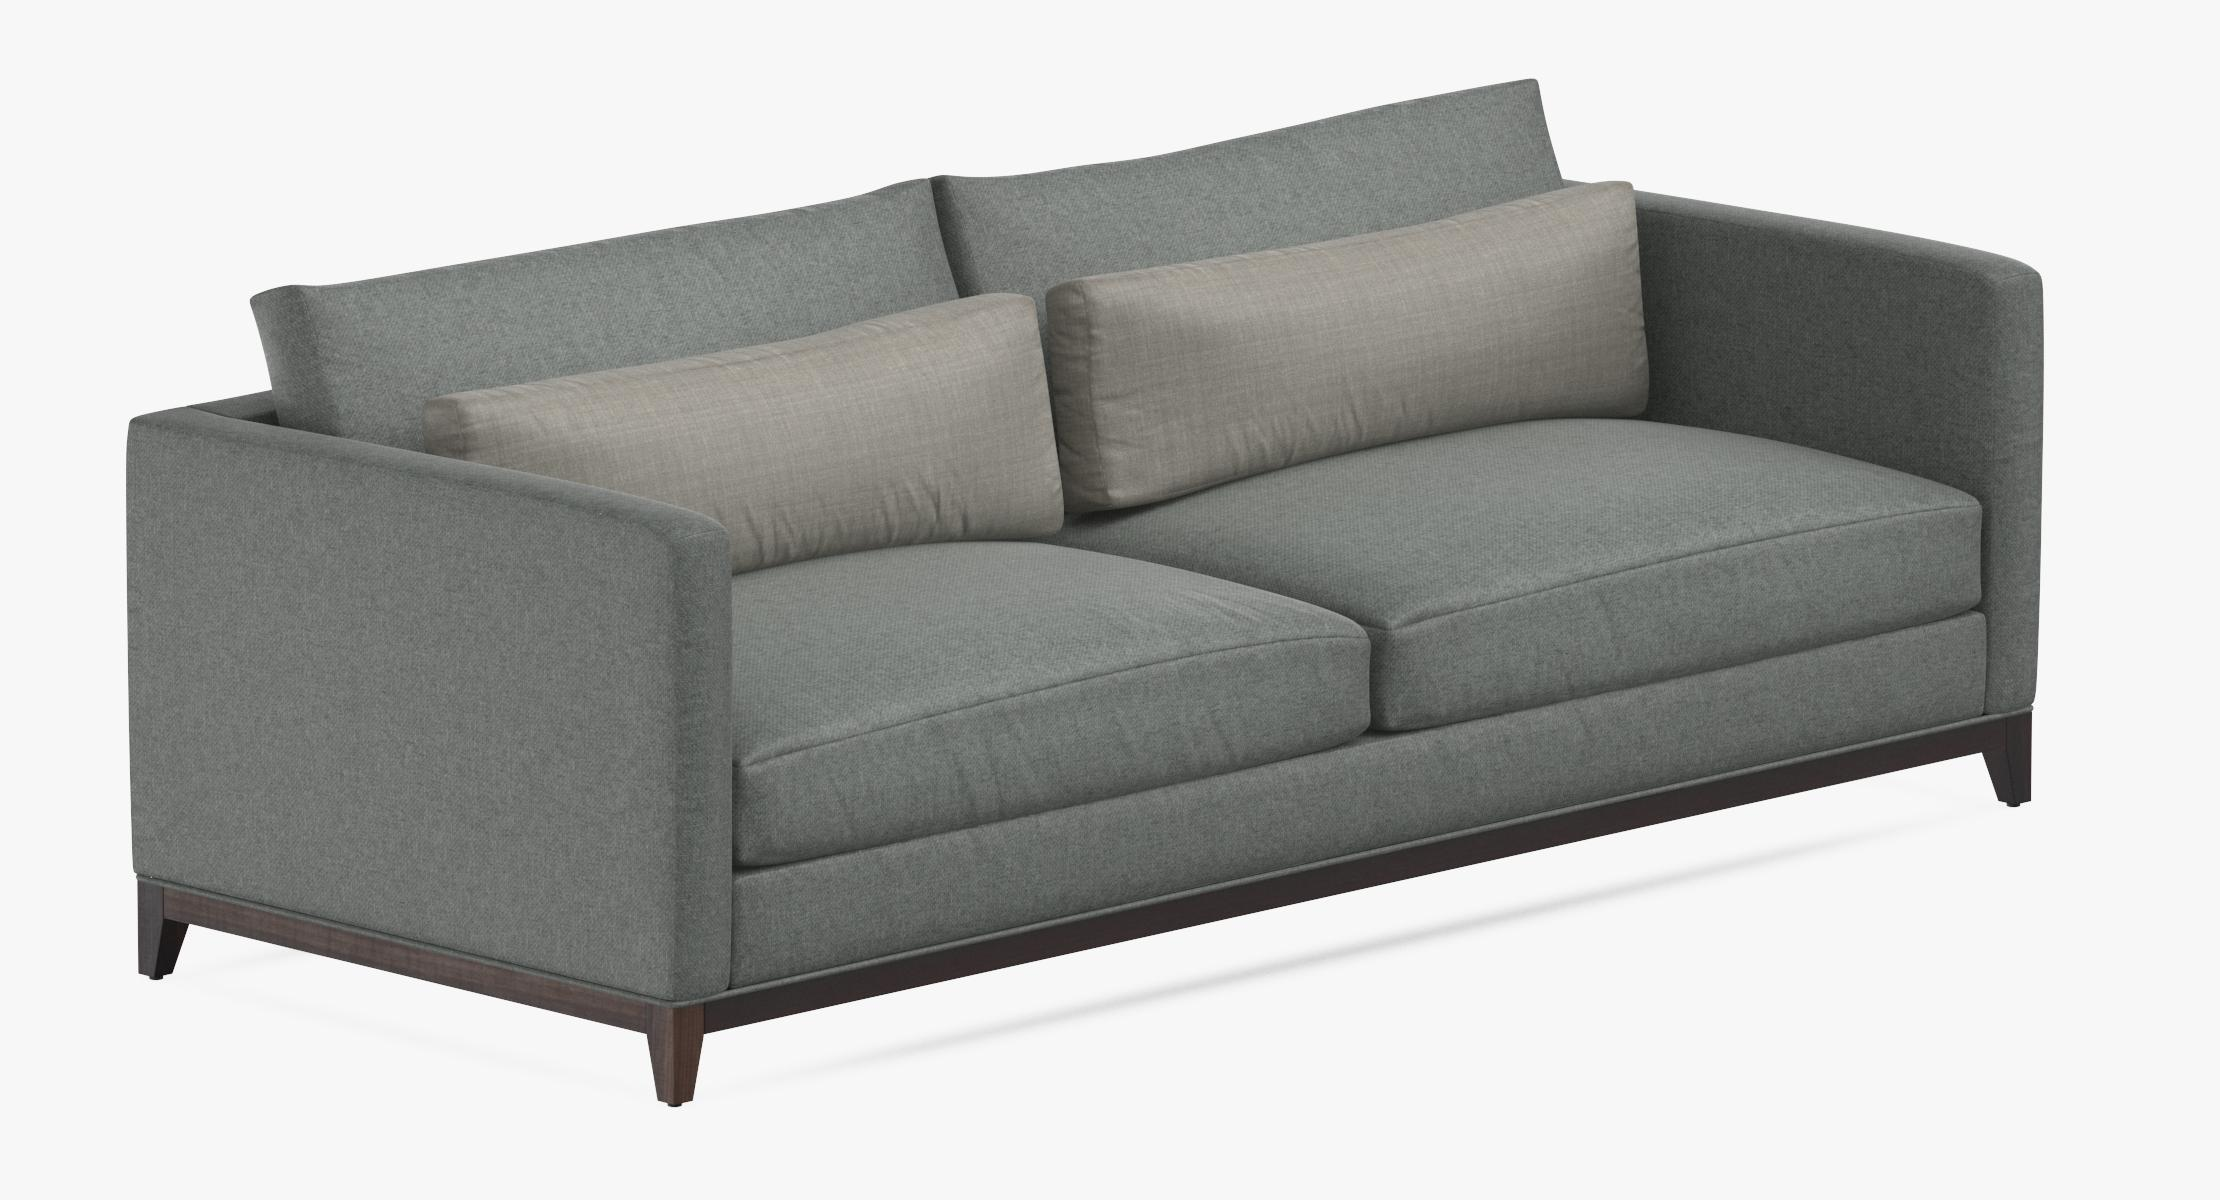 Contemporary 2 Seater Sofa - reel 1